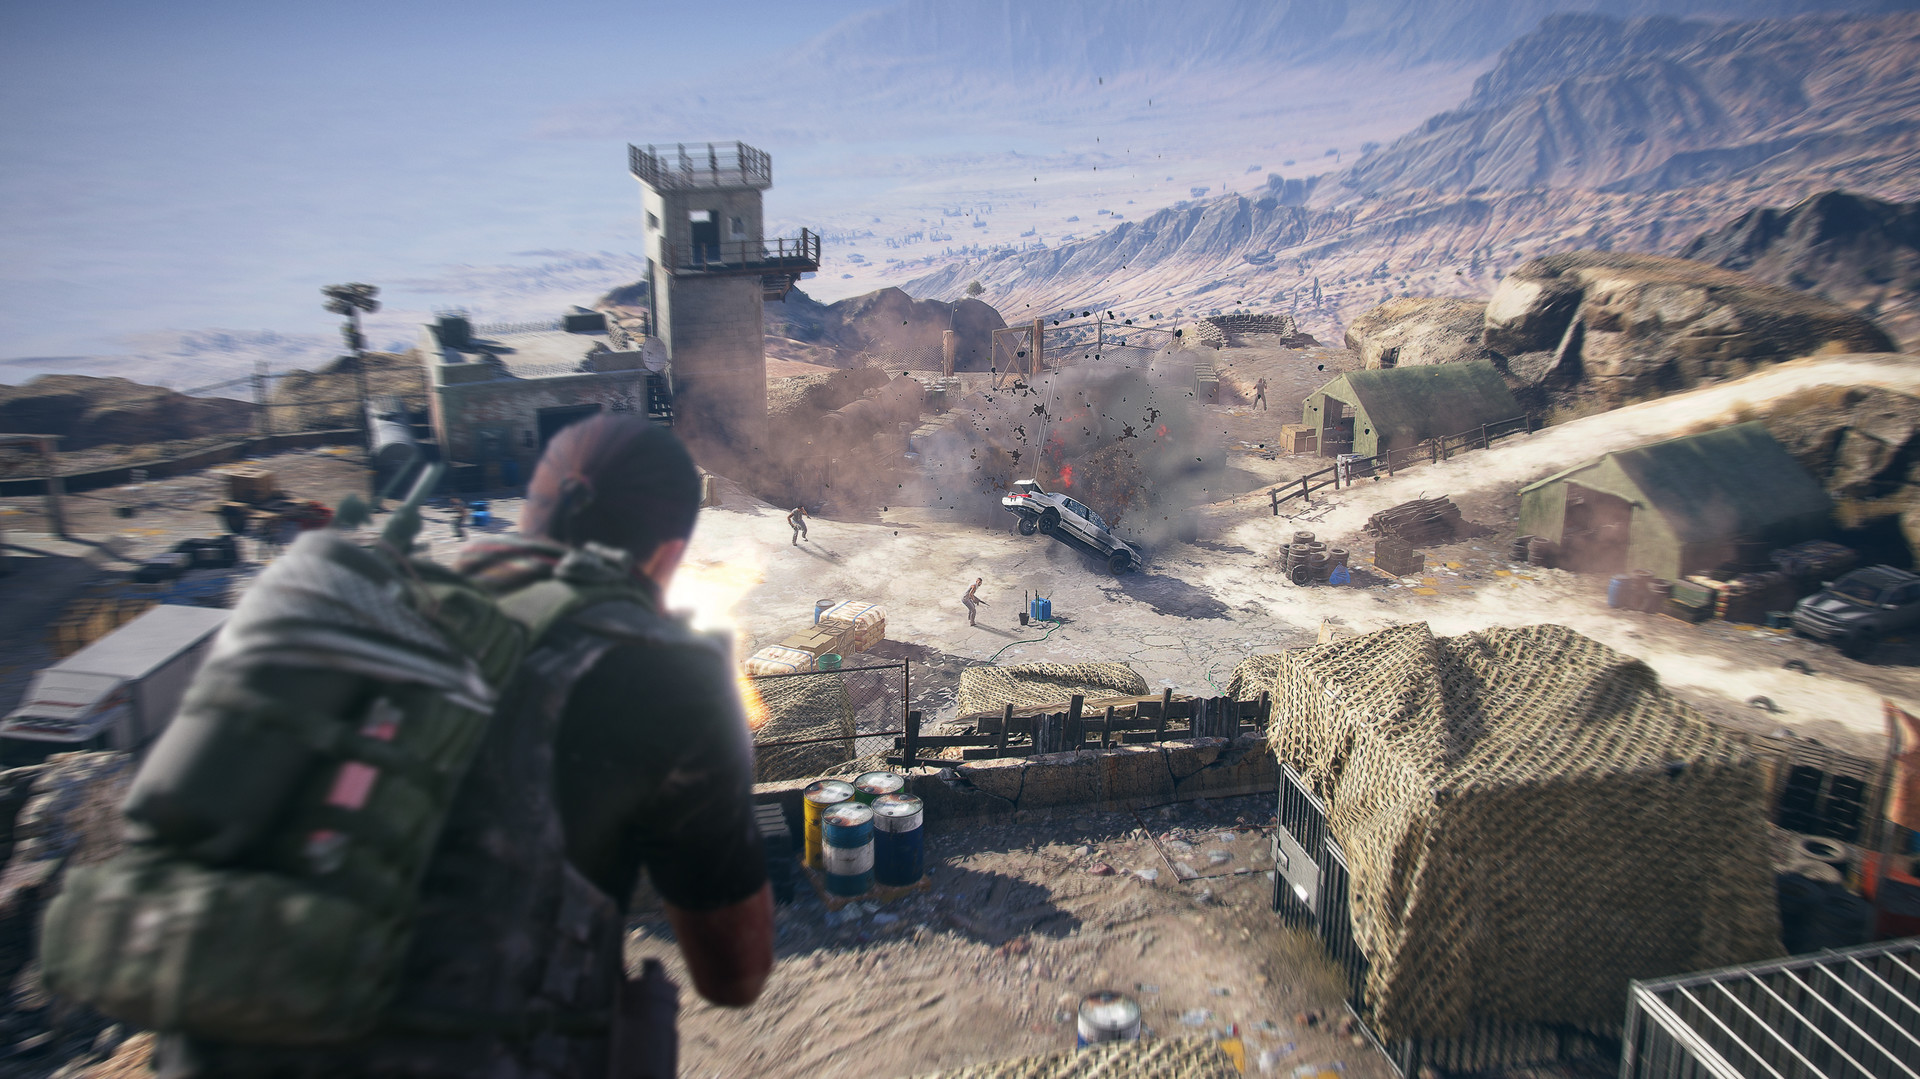 download tom clancys ghost recon wildlands cracked by steampunks include all dlc and latest multiplayer co-op update mirrorace multiup